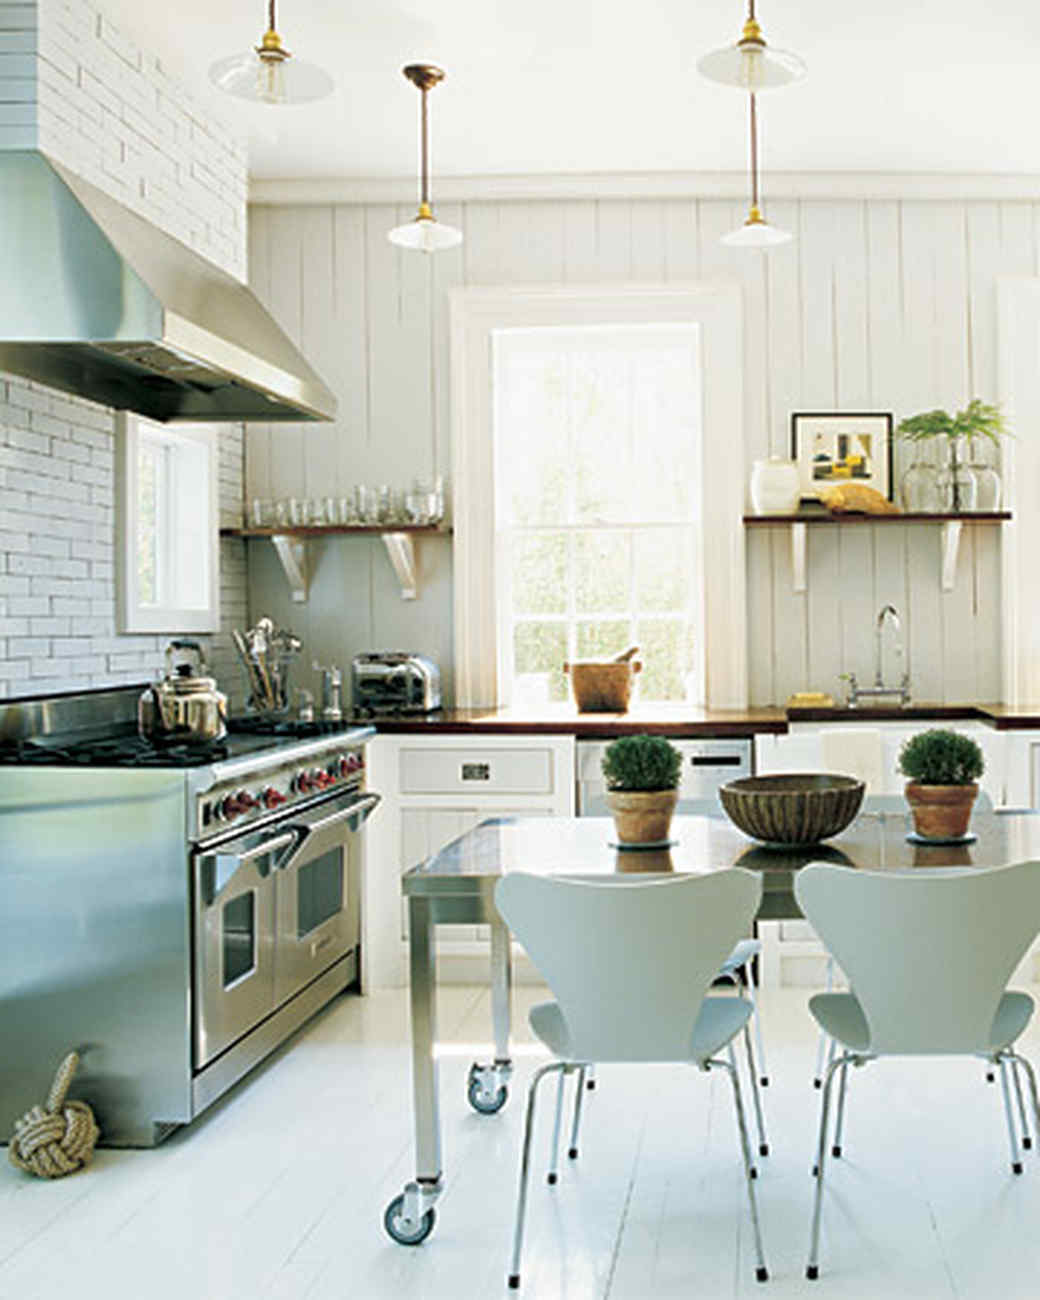 Home Tours of Gorgeous Kitchens | Martha Stewart